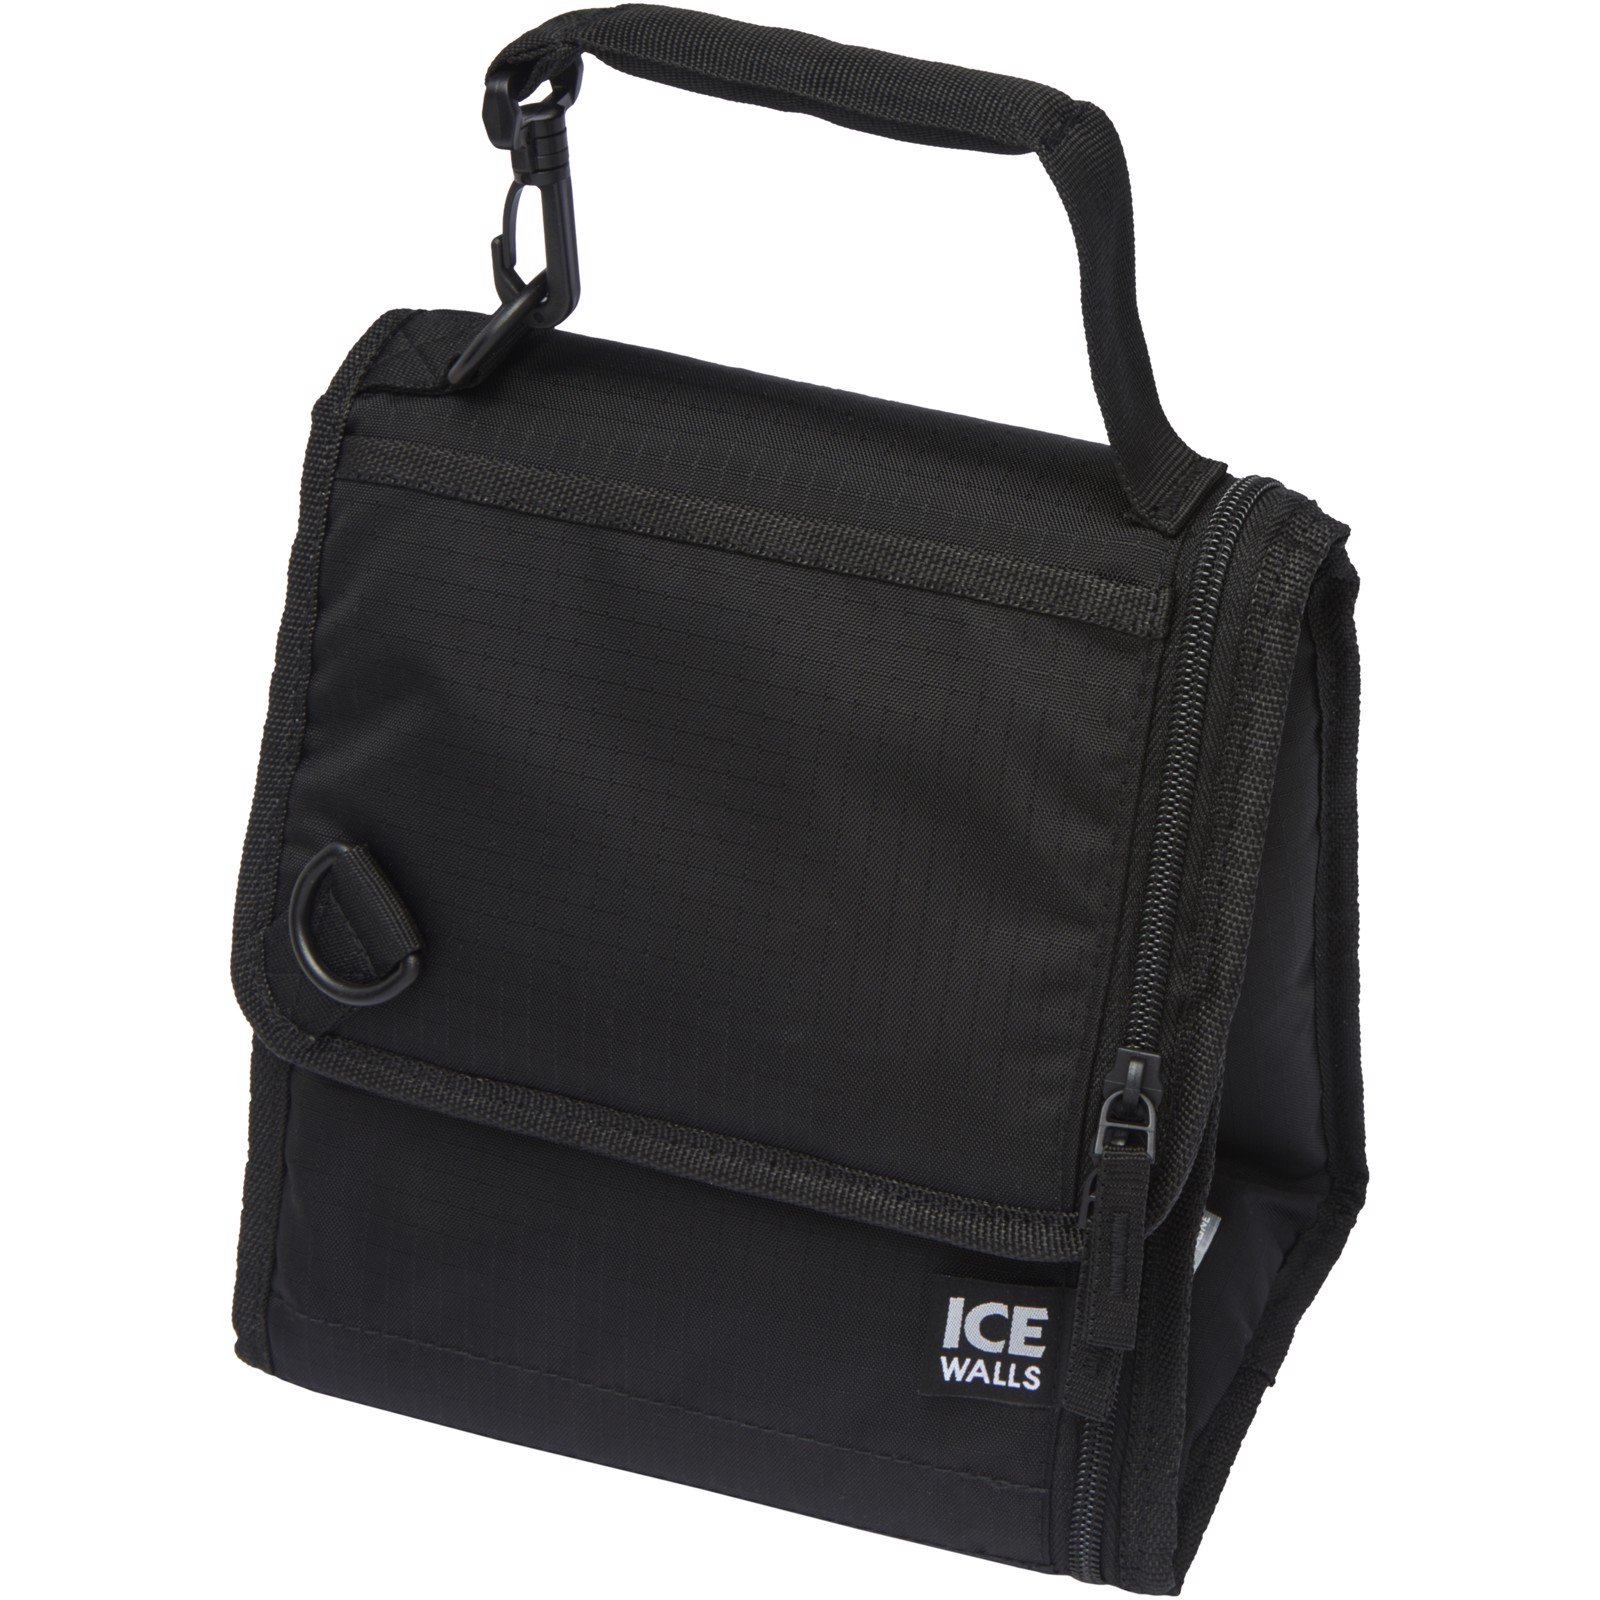 Ice-wall lunch cooler bag